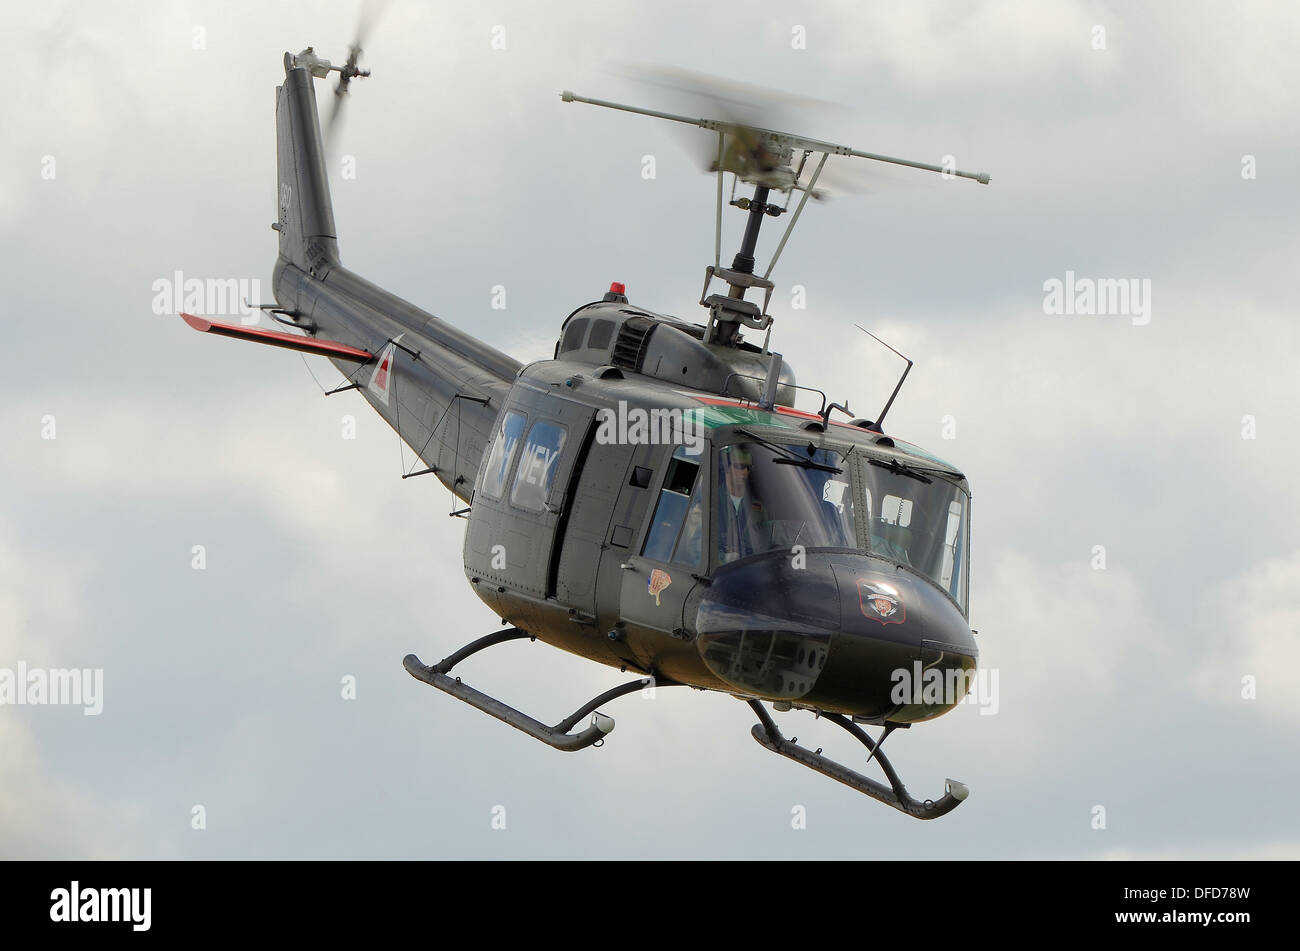 a-bell-uh-1-huey-helicopter-at-an-air-display-the-huey-is-the-image-DFD78W.jpg